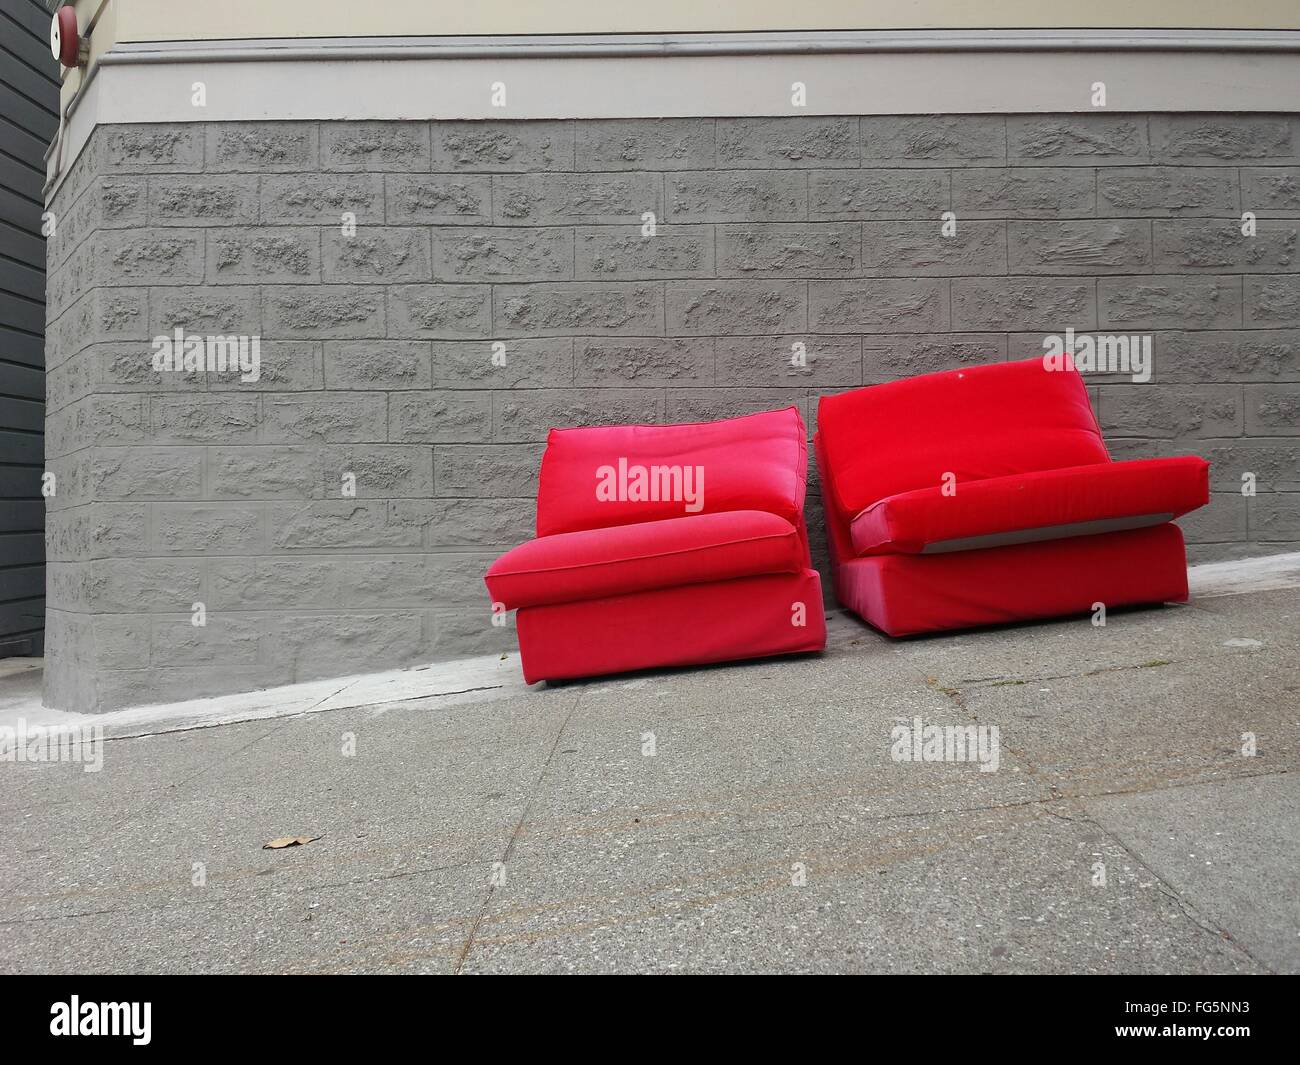 Red Abandoned Couches On Sutter Street Against Wall - Stock Image